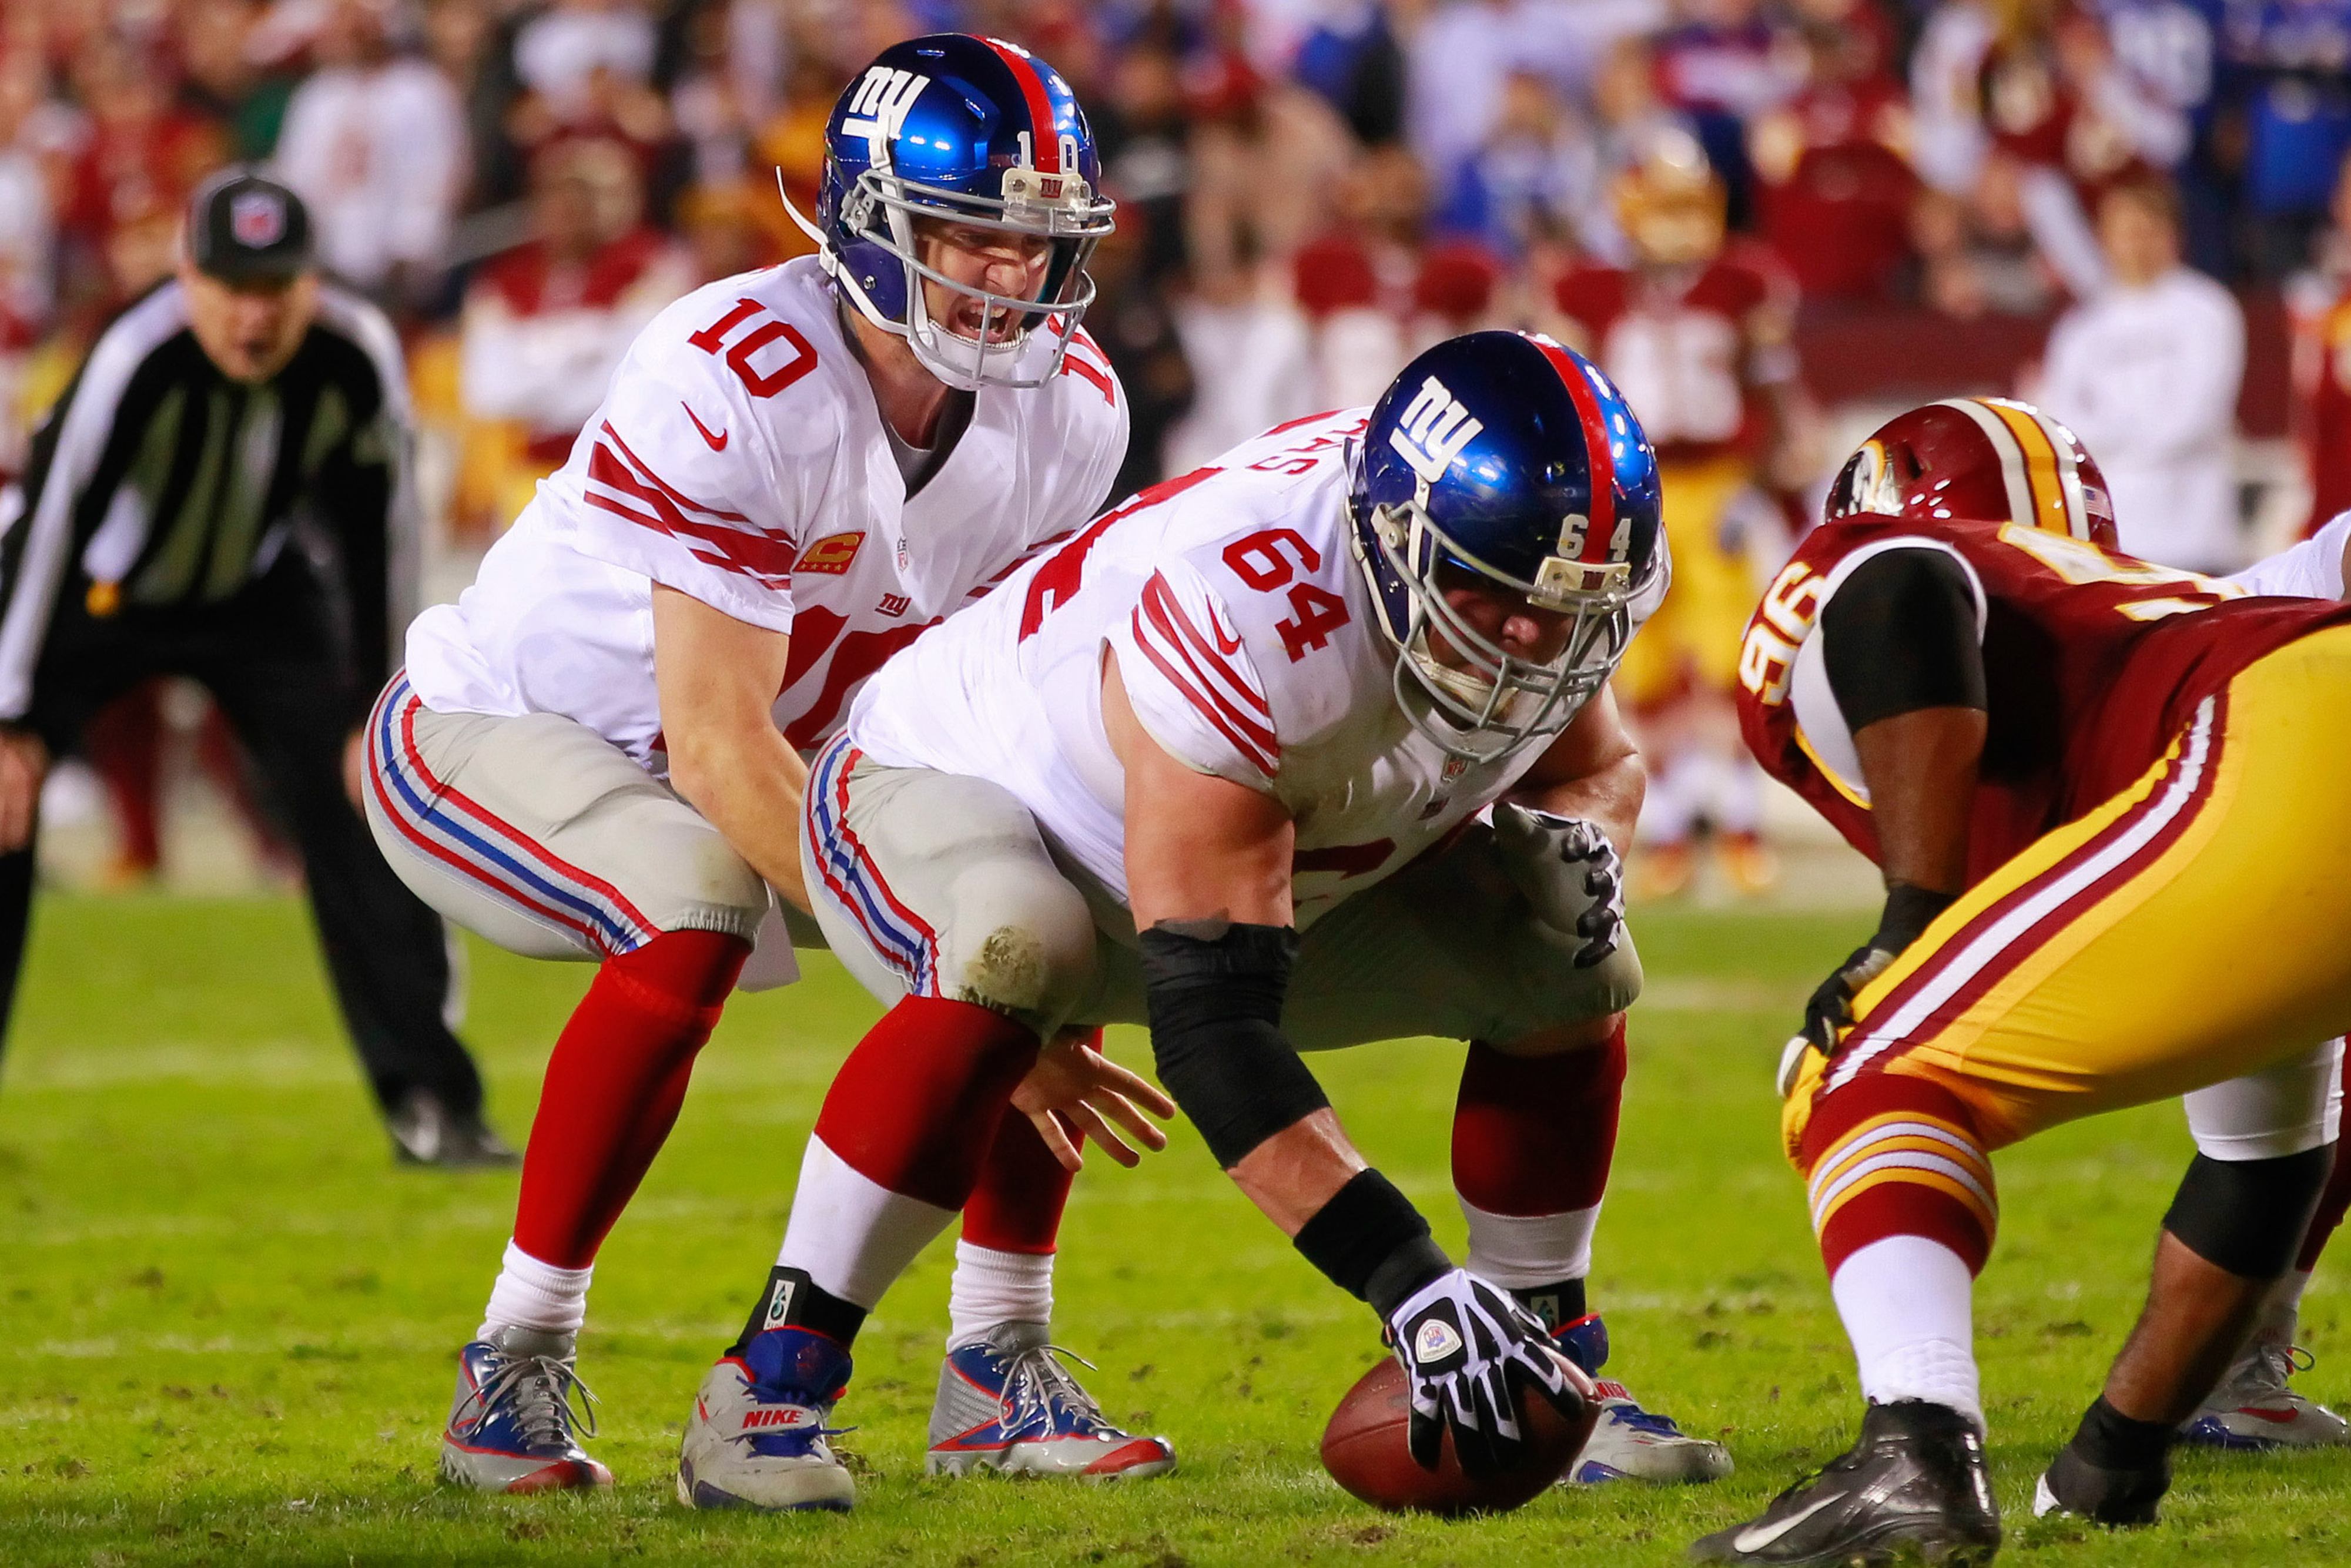 David Baas could be snapping to Eli Manning Monday night.